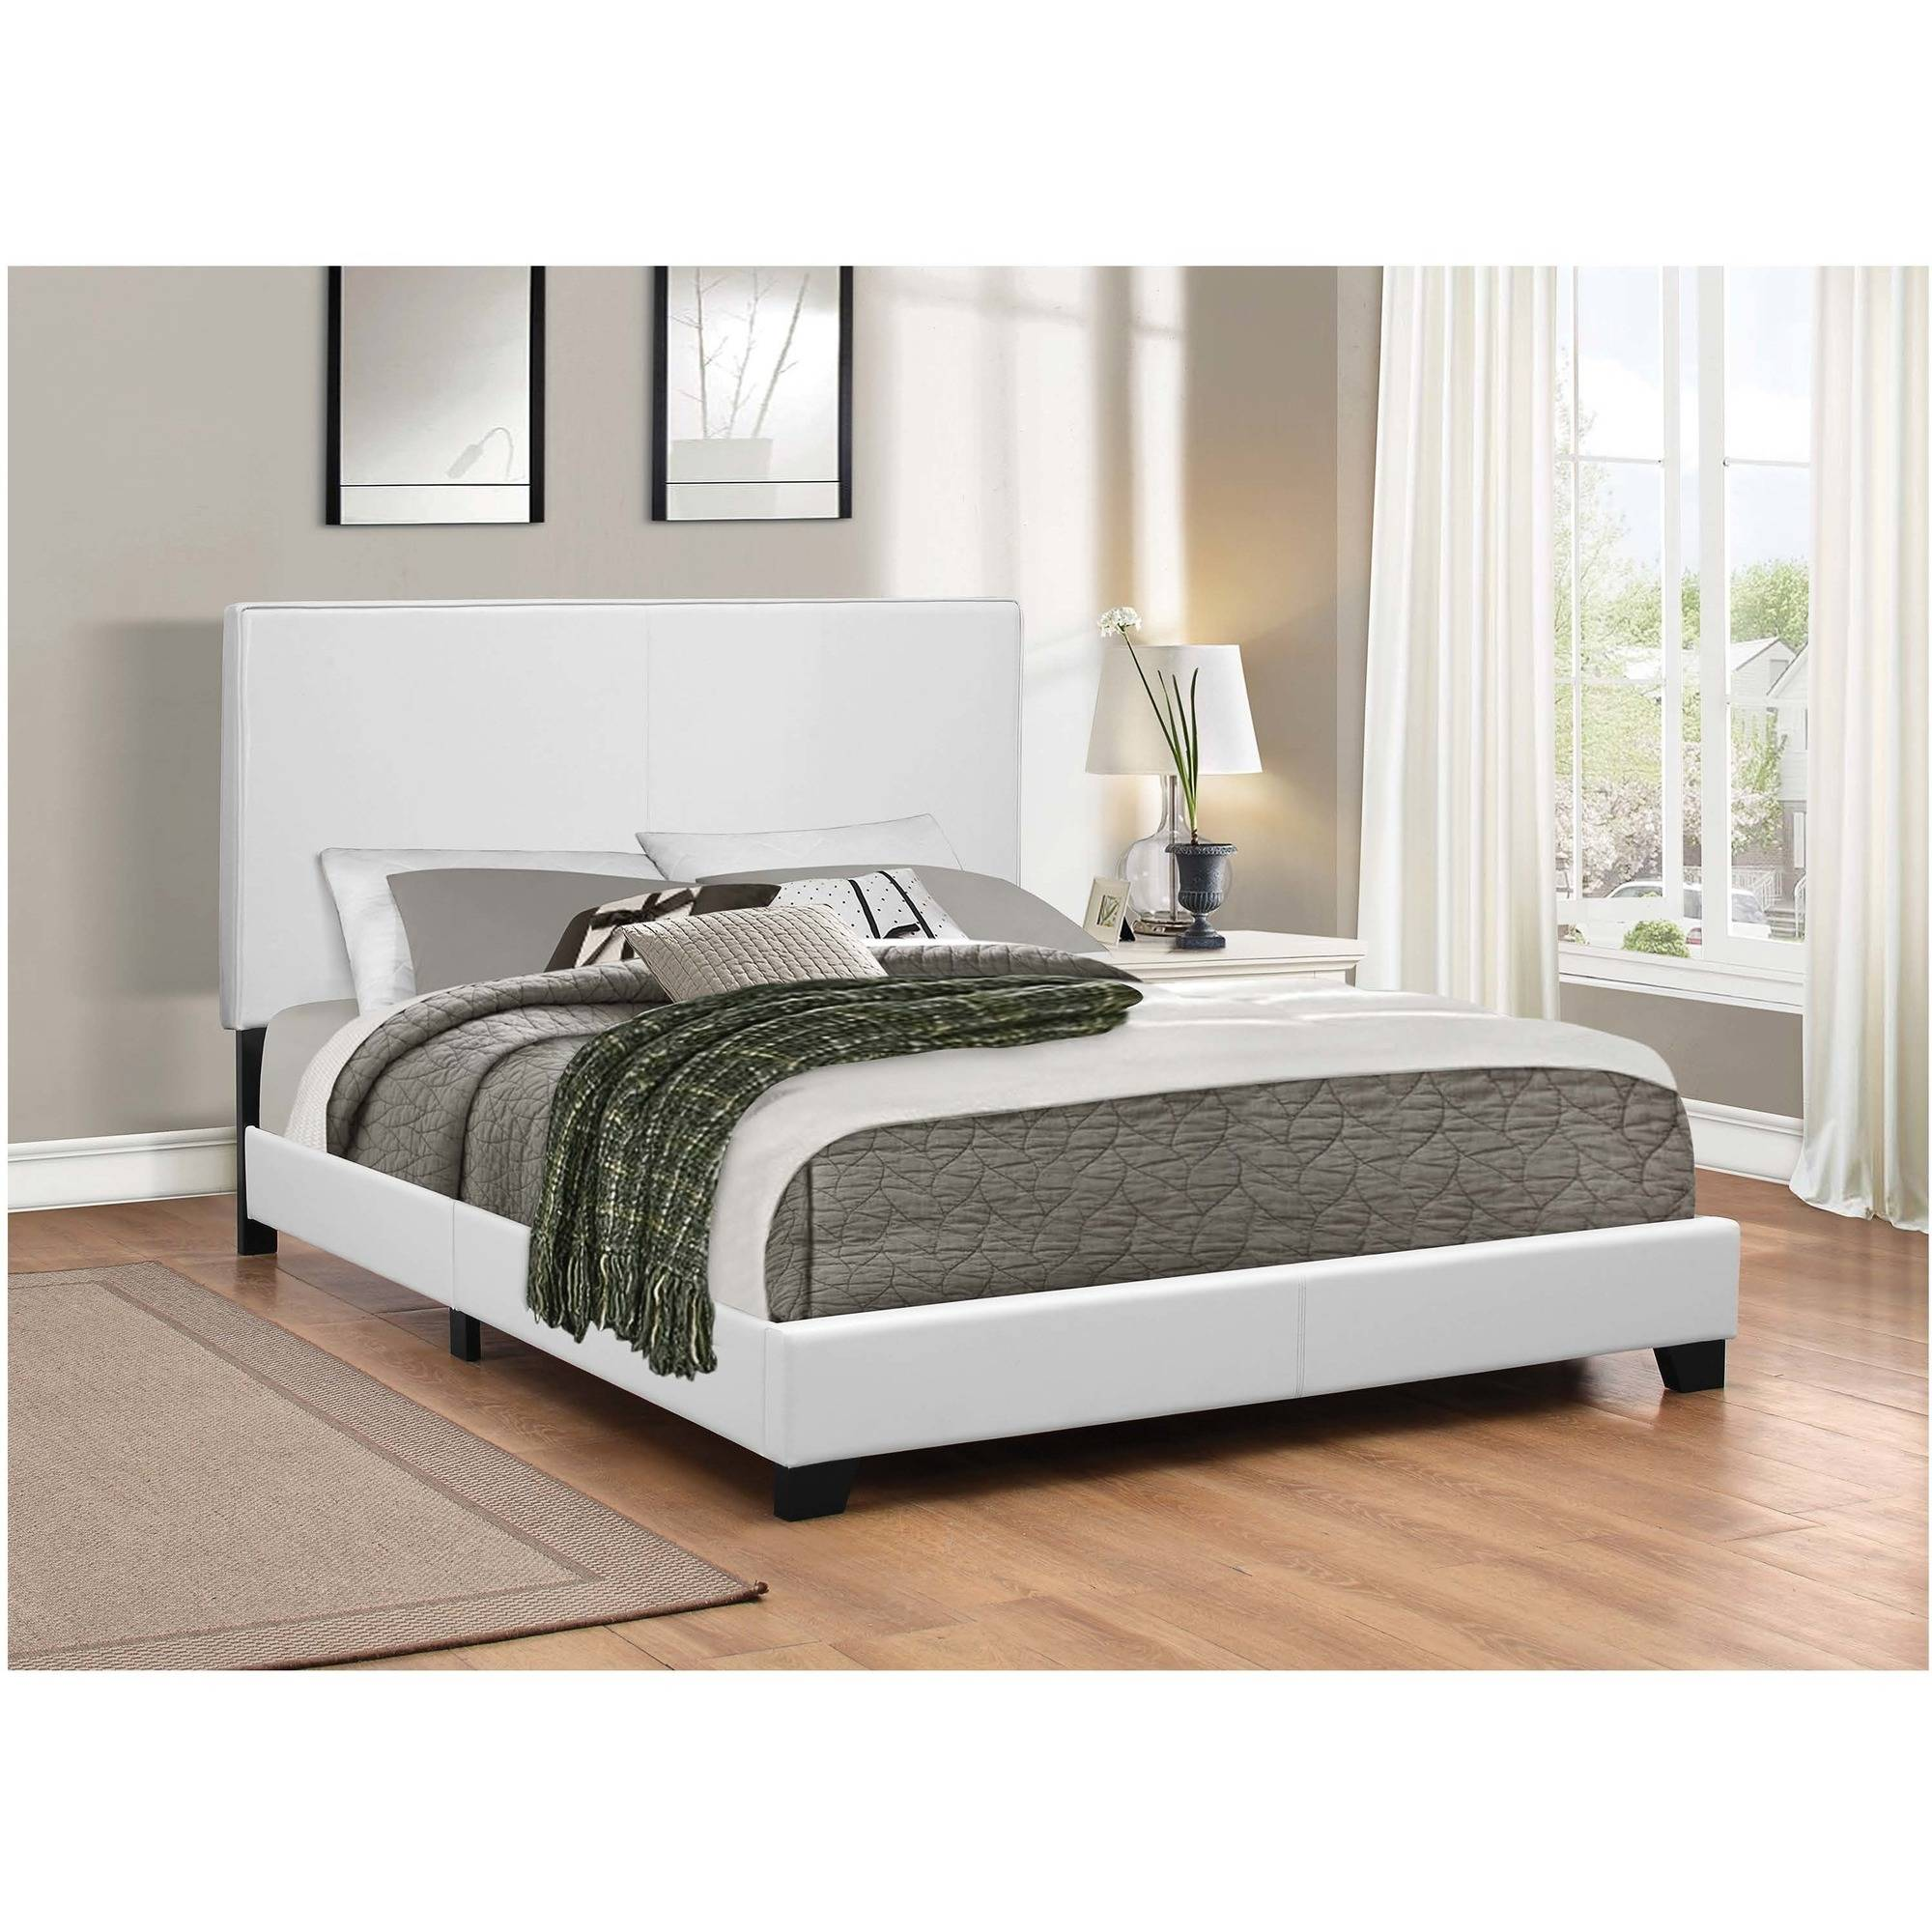 Coaster Company Mauve Upholstered Queen Bed, White Leatherette